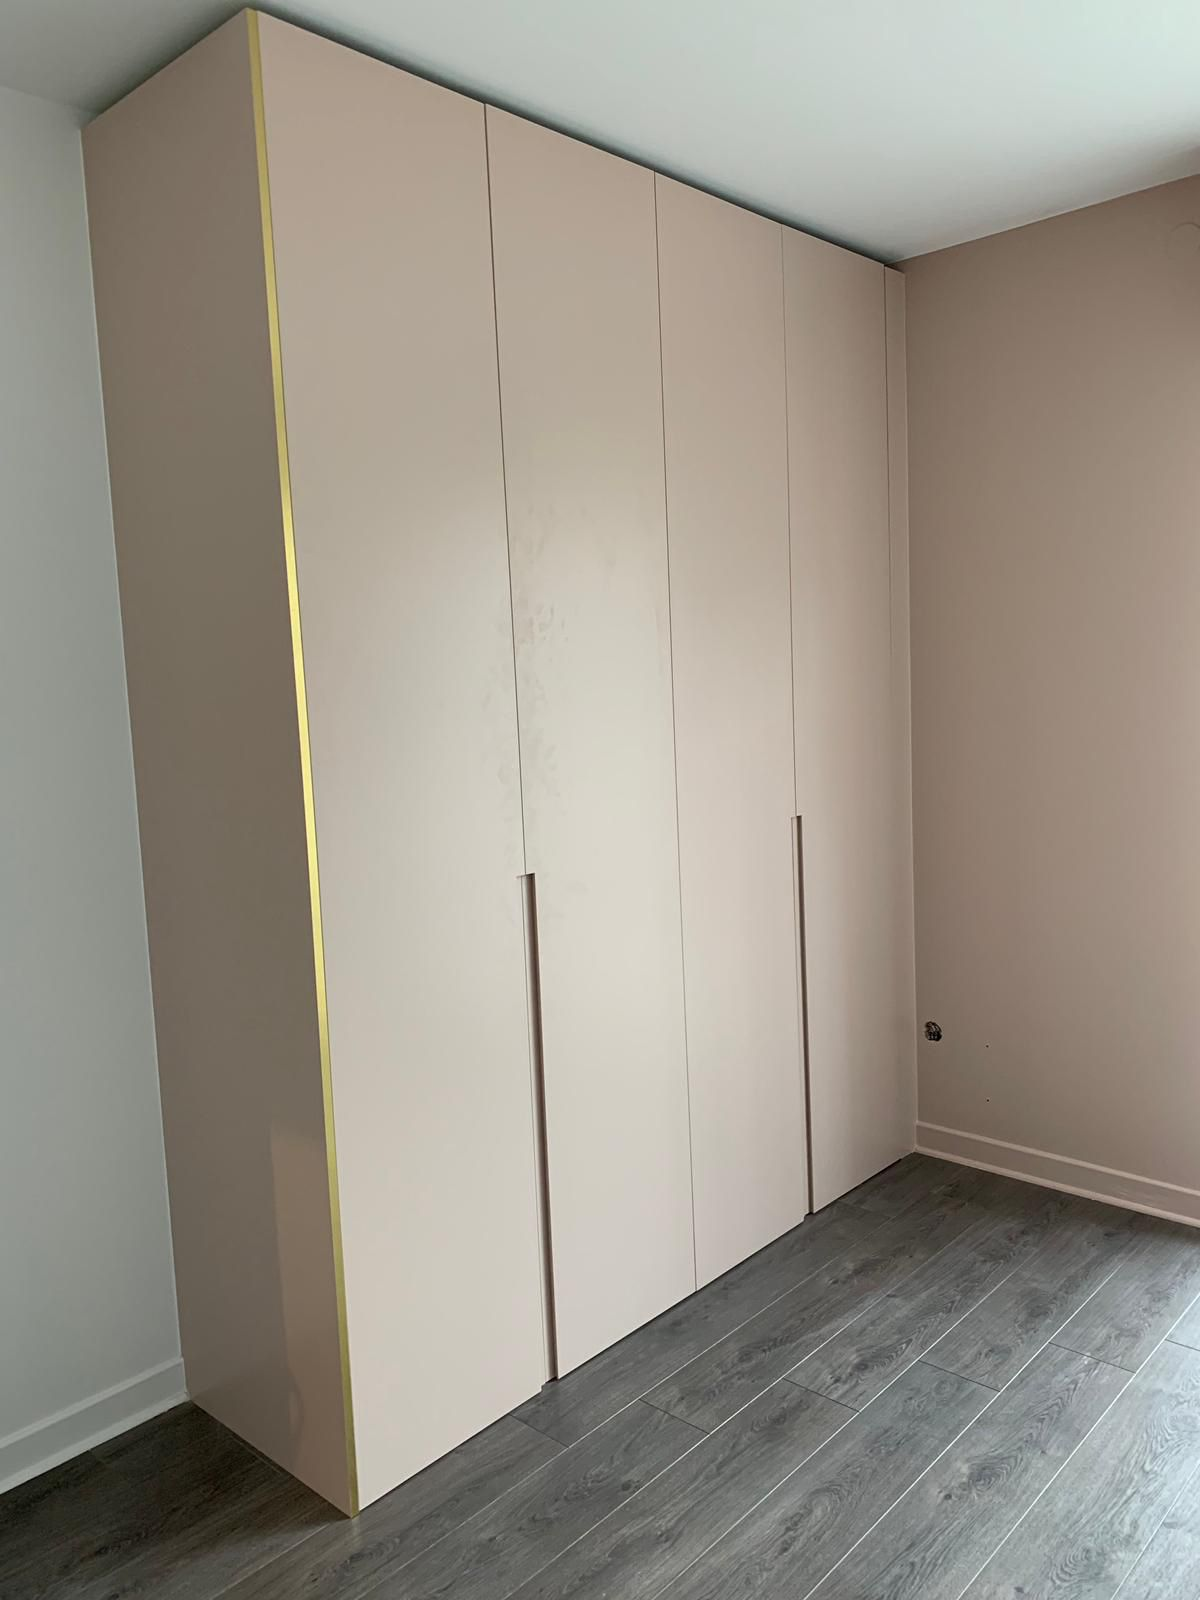 Pax Portes Tiroirs Ikea Decoration Architecture Renovation Dressing En 2020 Cloison De Separation Ikea Meuble Salle De Bain Dressing